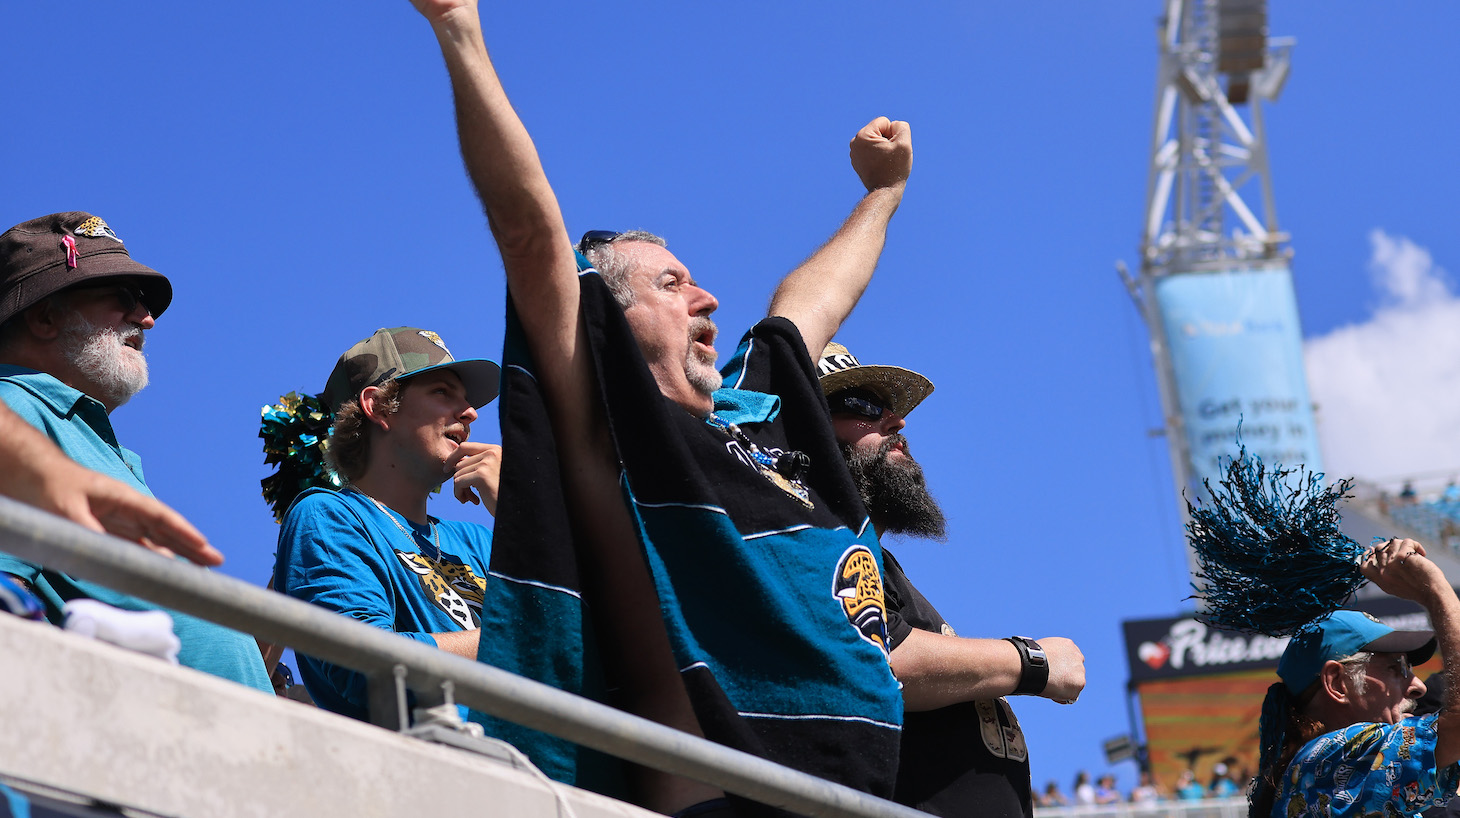 JACKSONVILLE, FLORIDA - OCTOBER 10: Jacksonville Jaguars fans react during the second quarter against the Tennessee Titans at TIAA Bank Field on October 10, 2021 in Jacksonville, Florida. (Photo by Sam Greenwood/Getty Images)